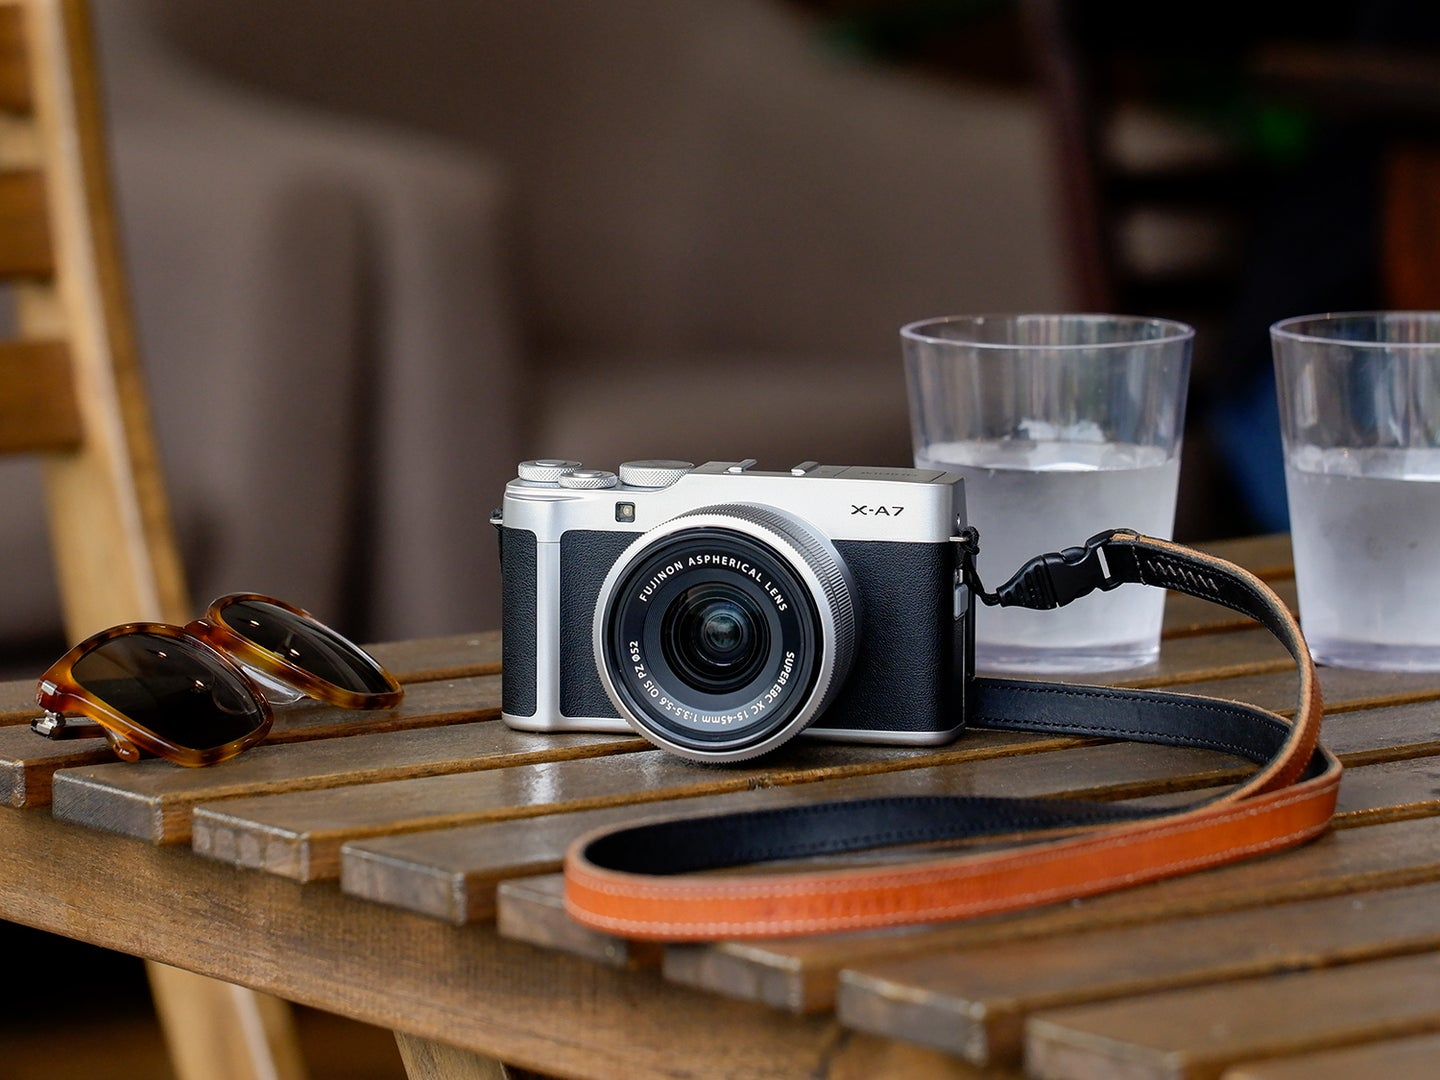 Fujifilm's X-A7 is an entry-level mirrorless with a 24MP sensor